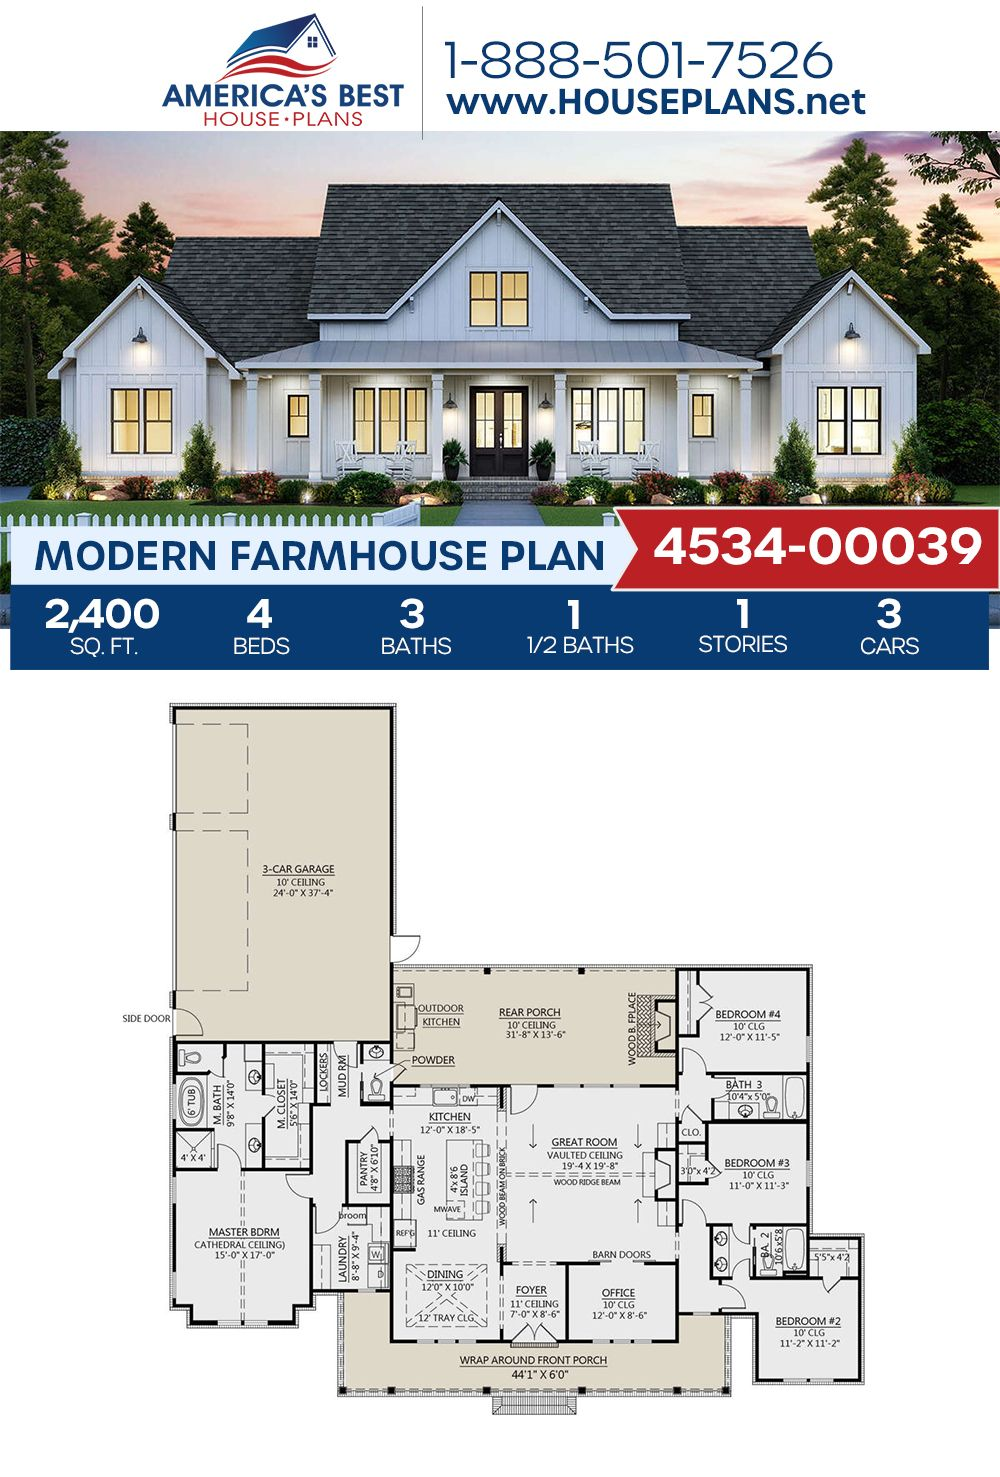 House Plan 4534 00039 Modern Farmhouse Plan 2 400 Square Feet 4 Bedrooms 3 5 Bathrooms Modern Farmhouse Plans Craftsman House Plans Family House Plans